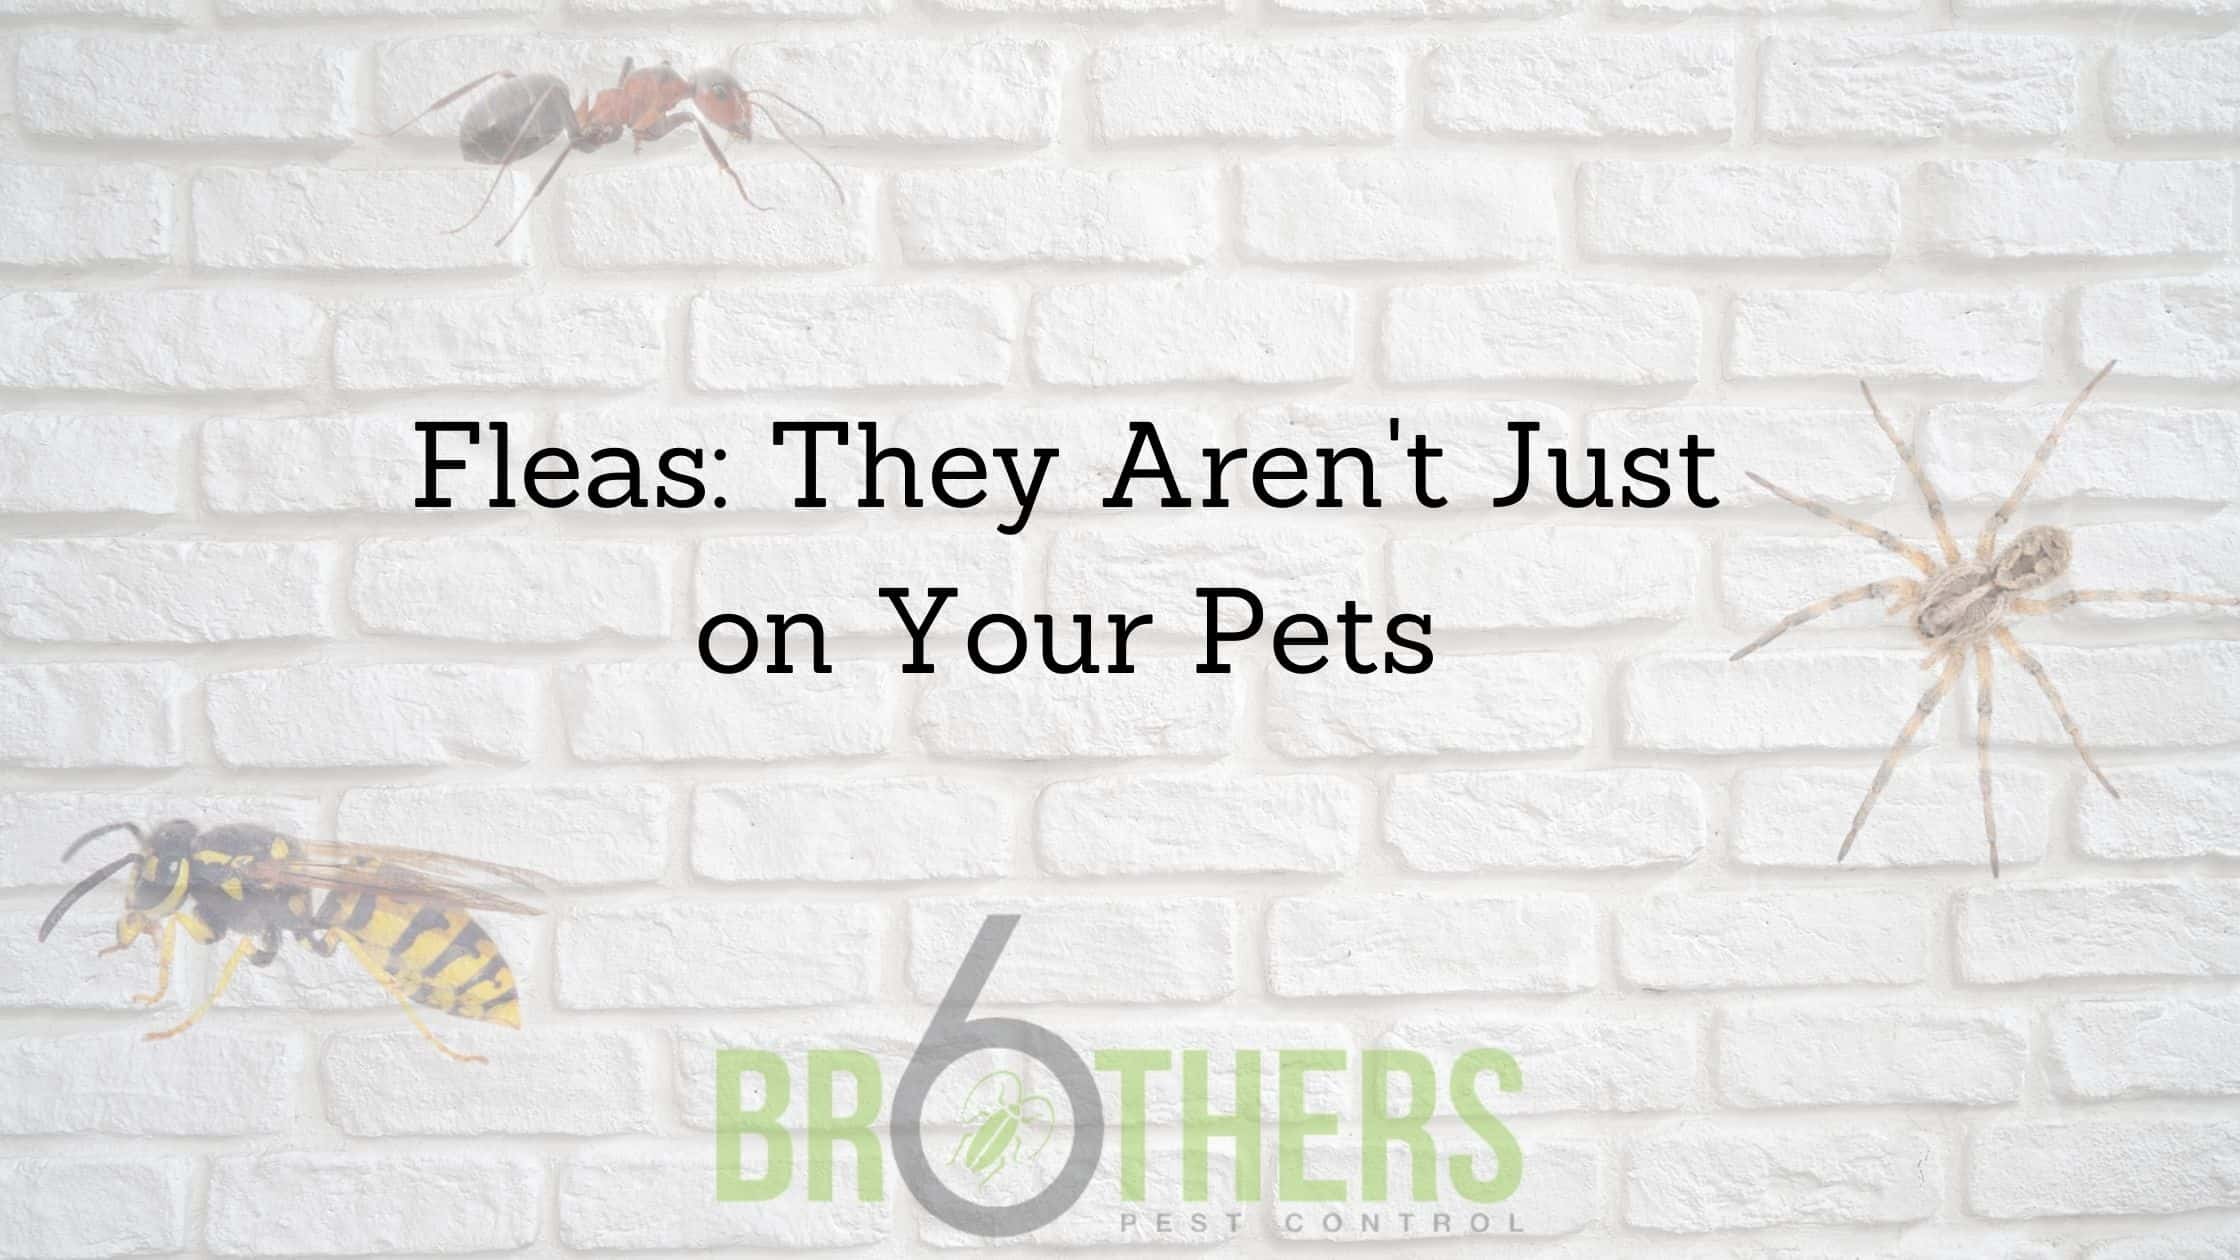 Fleas: They Aren't Just on Your Pets